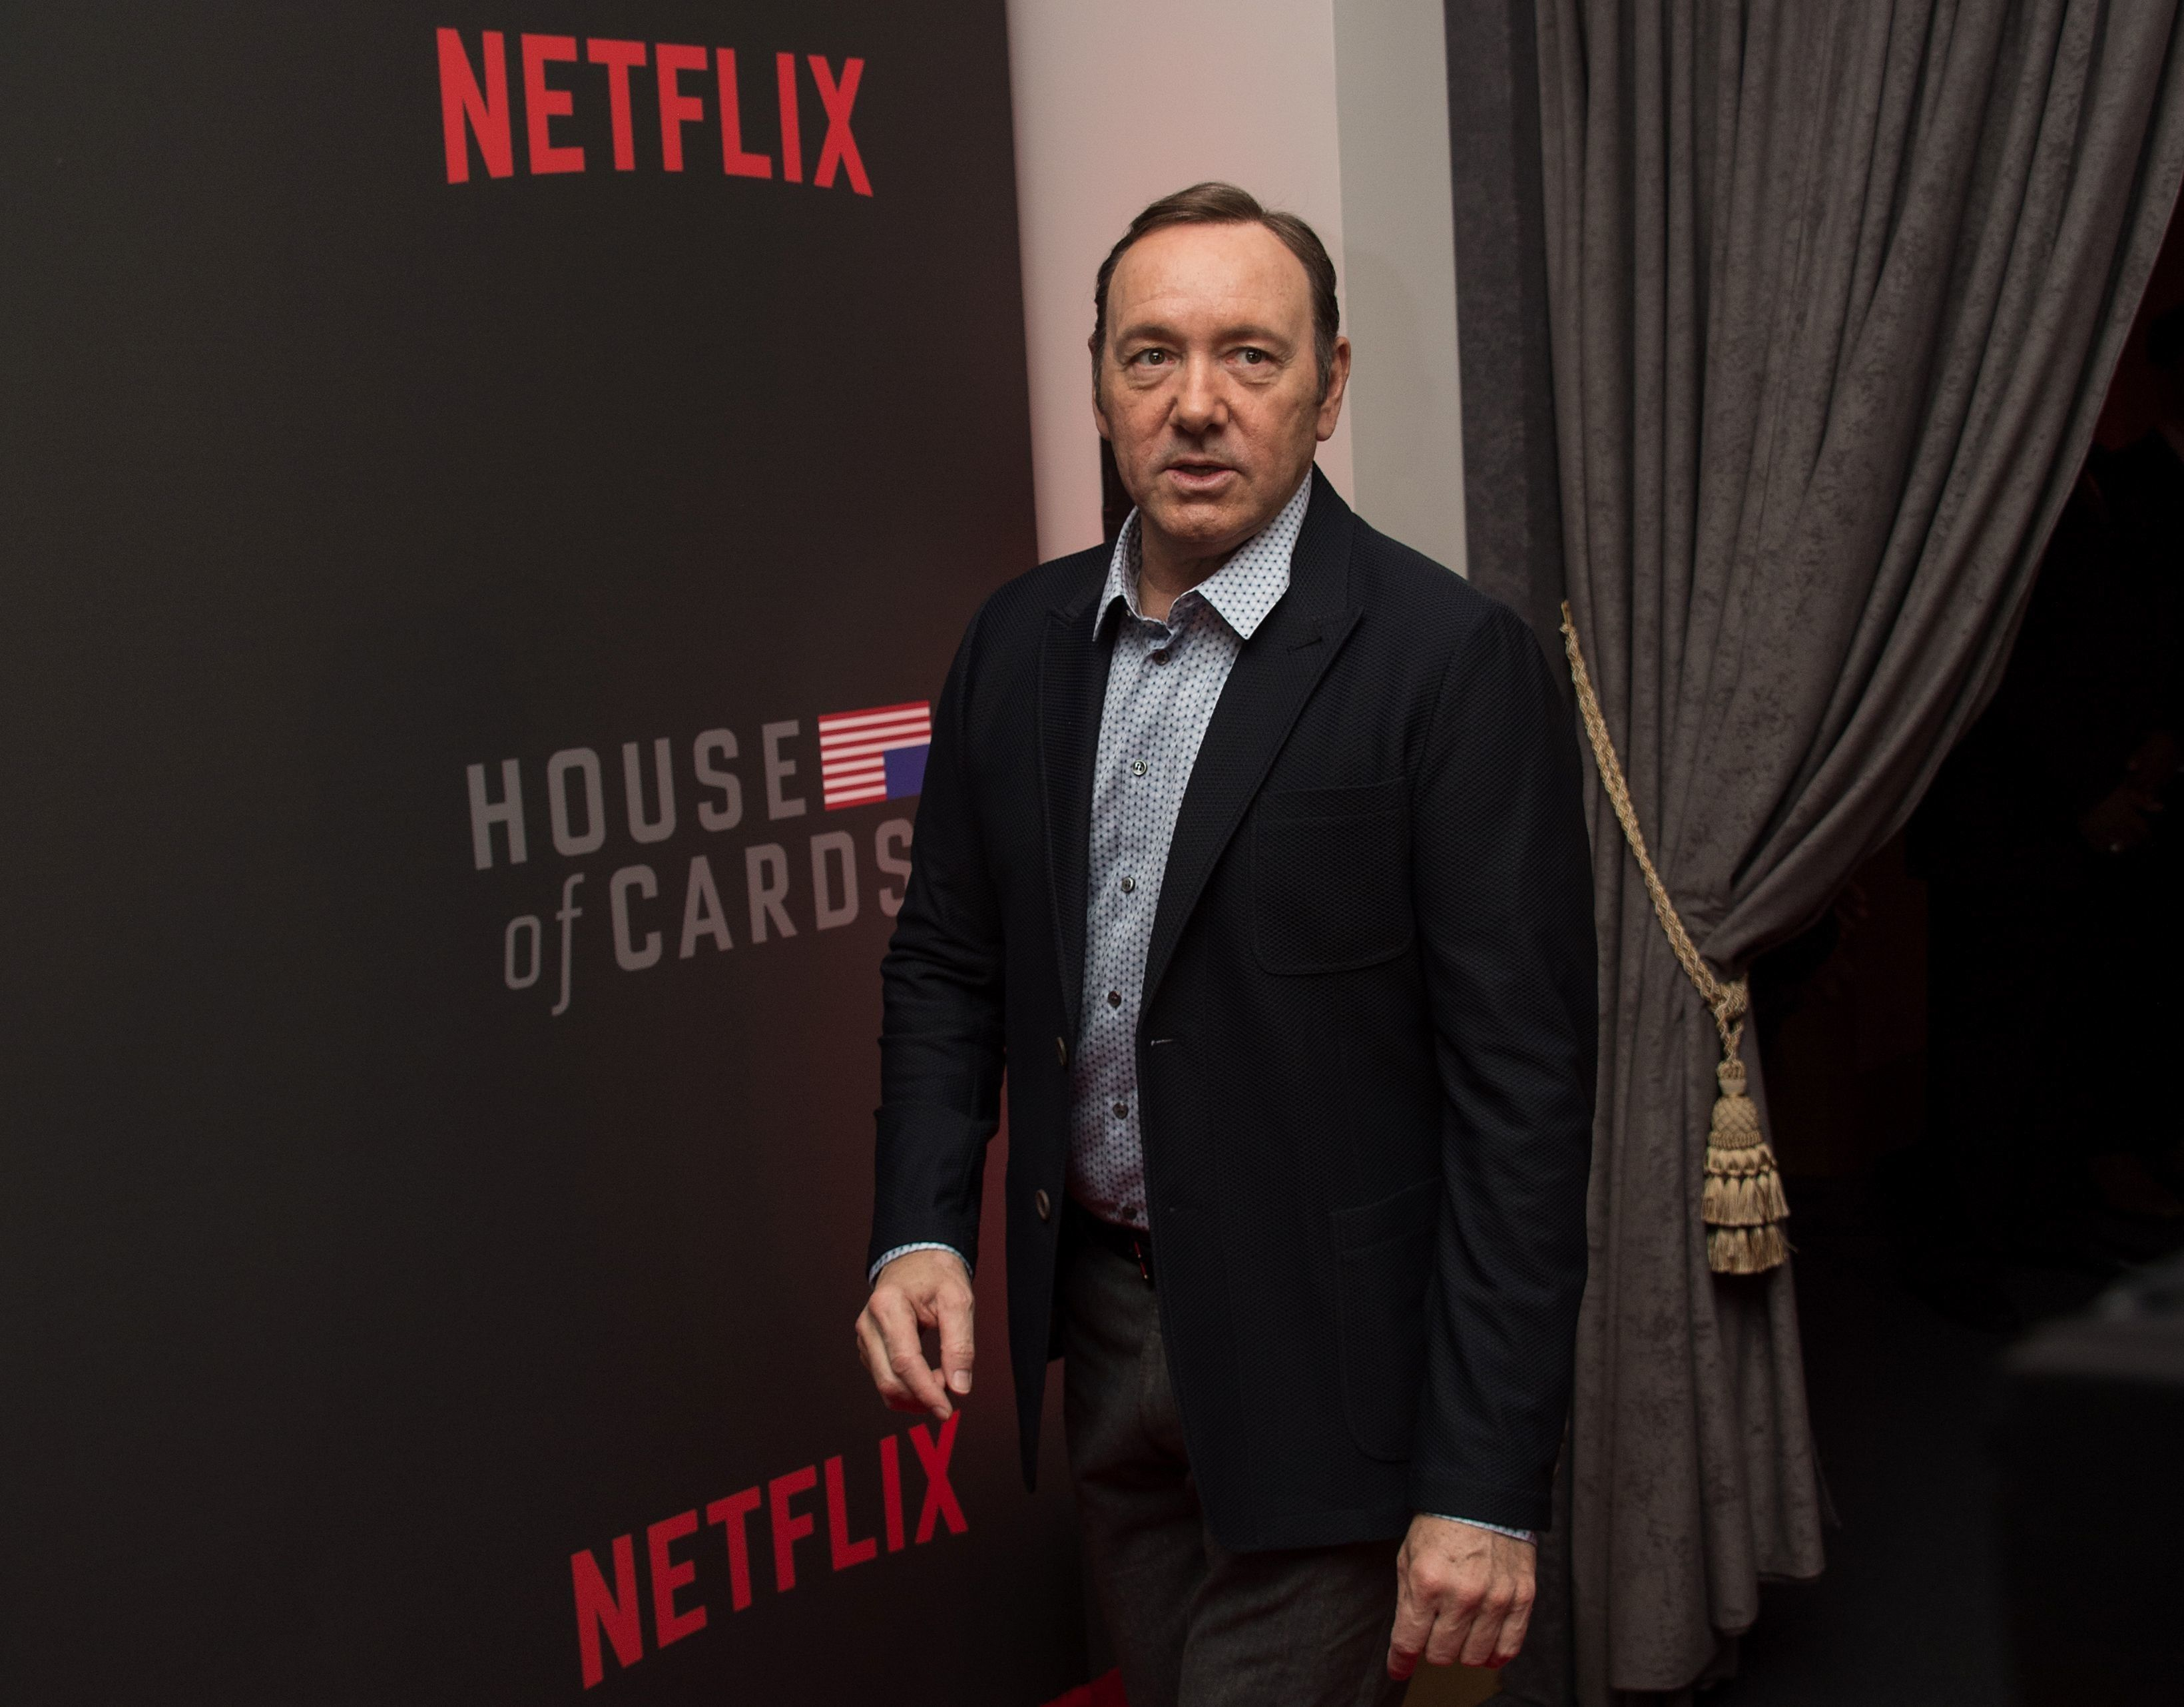 Actor Kevin Spacey arrives at the season 4 premiere screening of the Netflix show 'House of Cards' in Washington, DC, on February 22, 2016. / AFP / Nicholas Kamm        (Photo credit should read NICHOLAS KAMM/AFP/Getty Images)